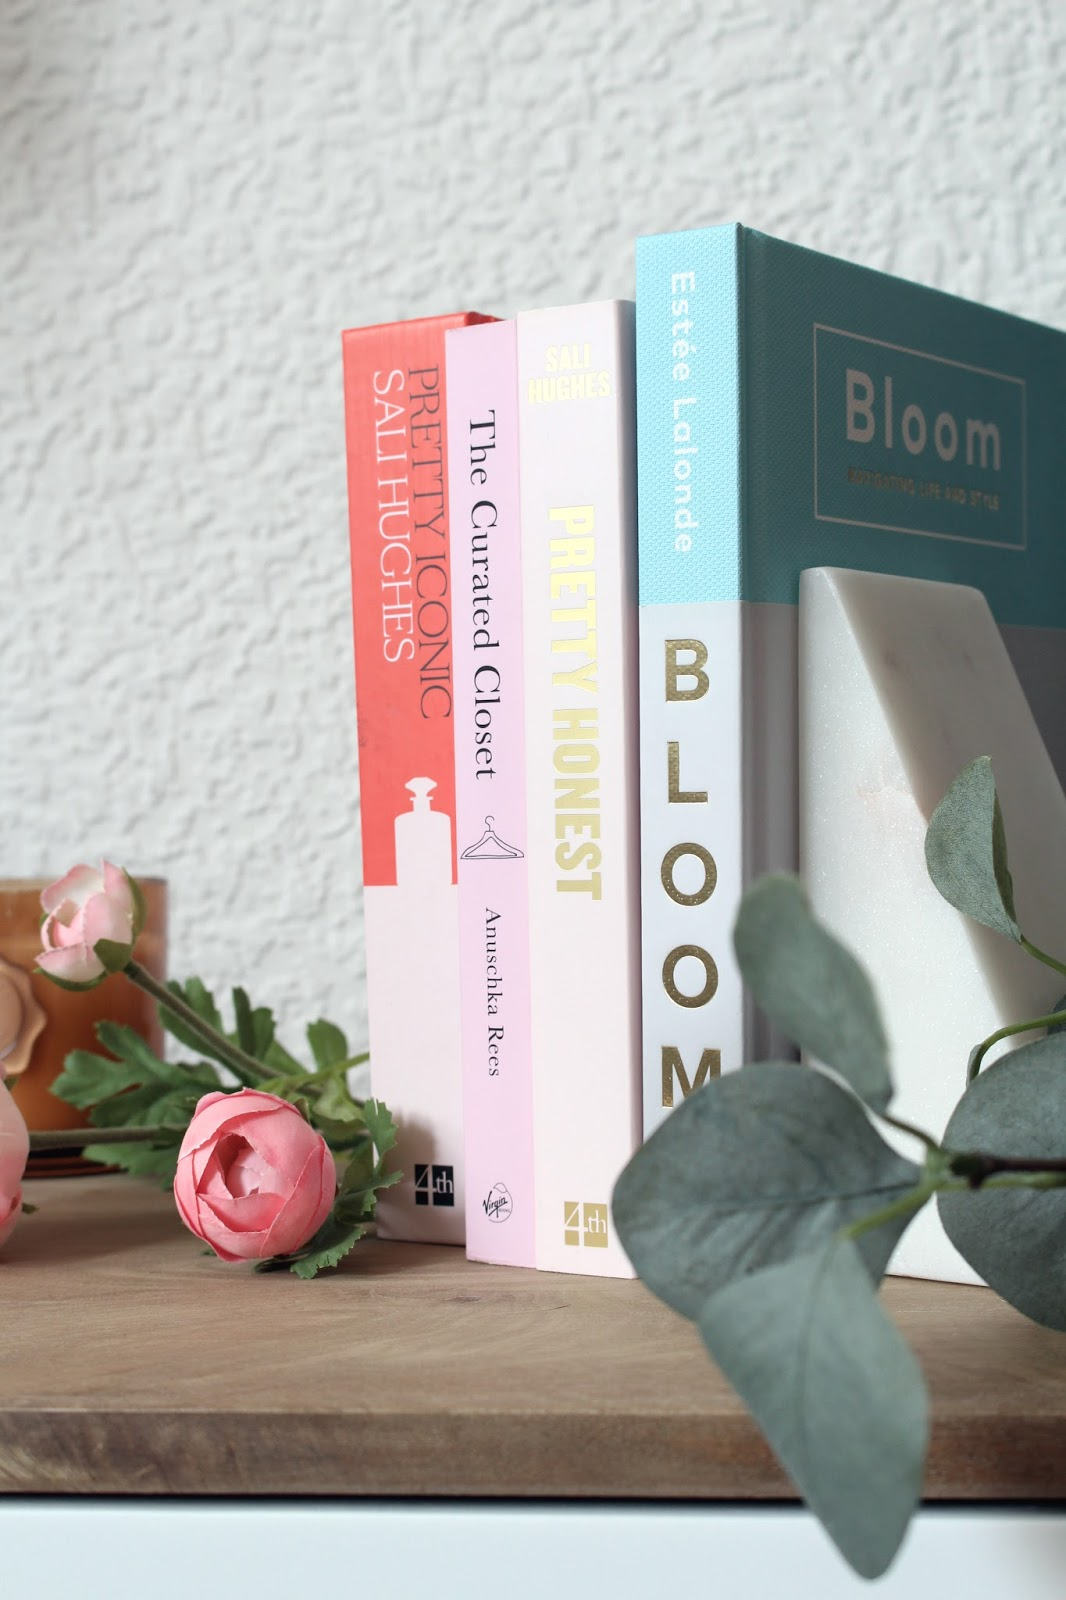 Some of my favourite books from my growing cliche blogger library